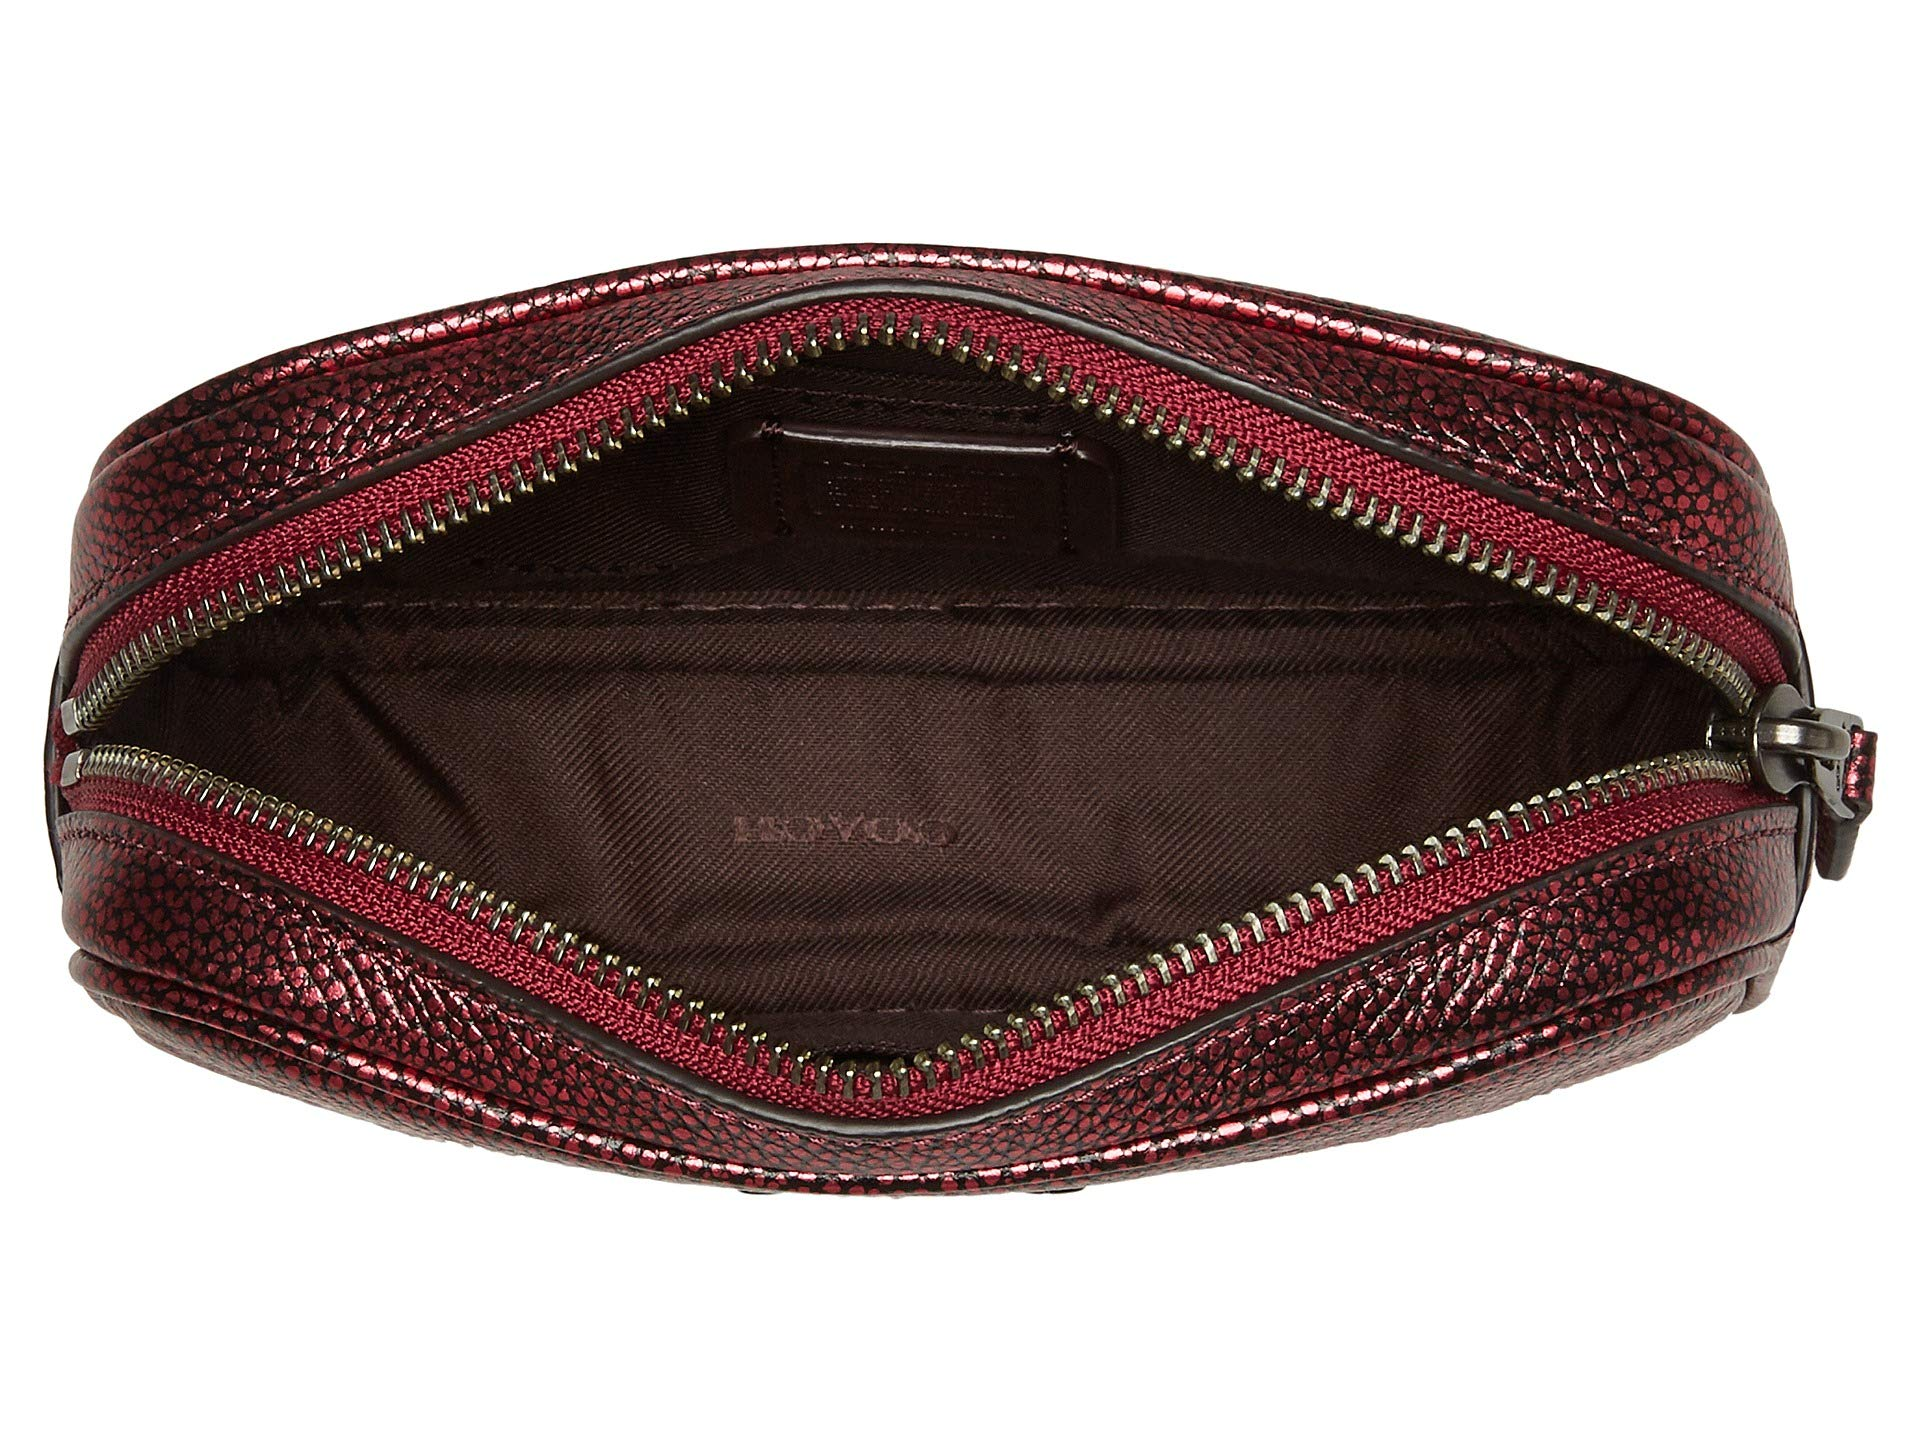 Belt Bag Dressy metallic Coach Berry Gm Leather Metallic xvUqwwI1t